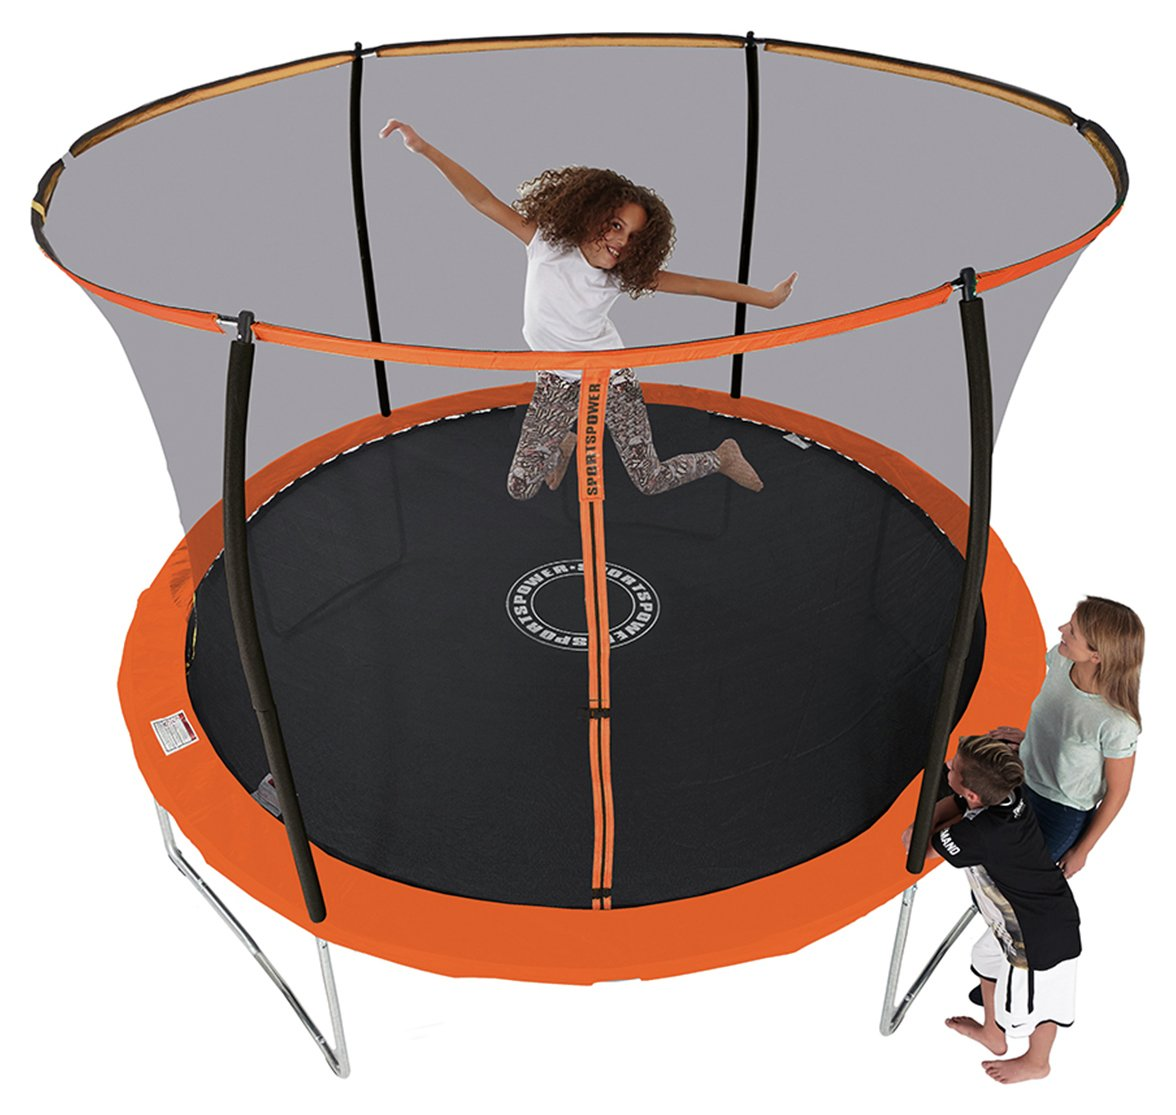 Sportspower 8ft Trampoline With Folding Enclosure. Review